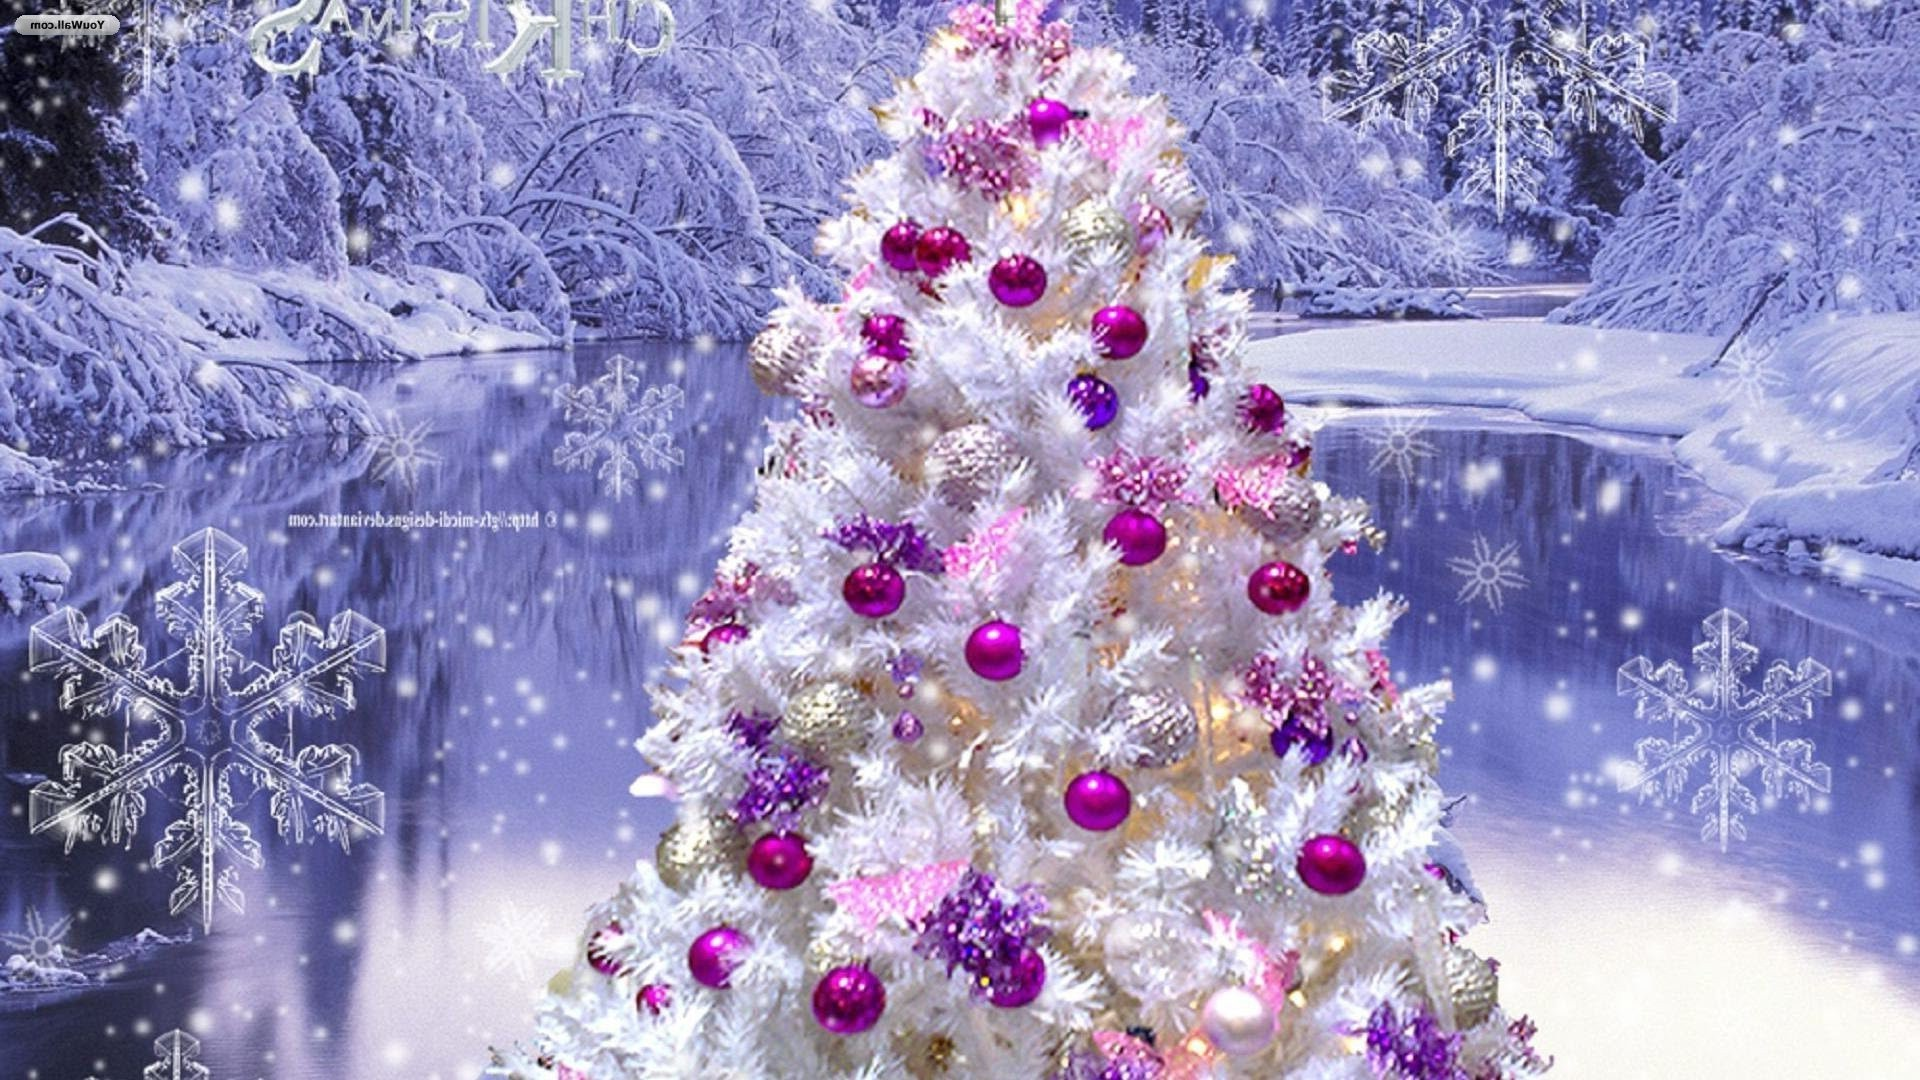 https://million-wallpapers.com/wallpapers/5/0/12080395476330354898/christmas-tree.jpg